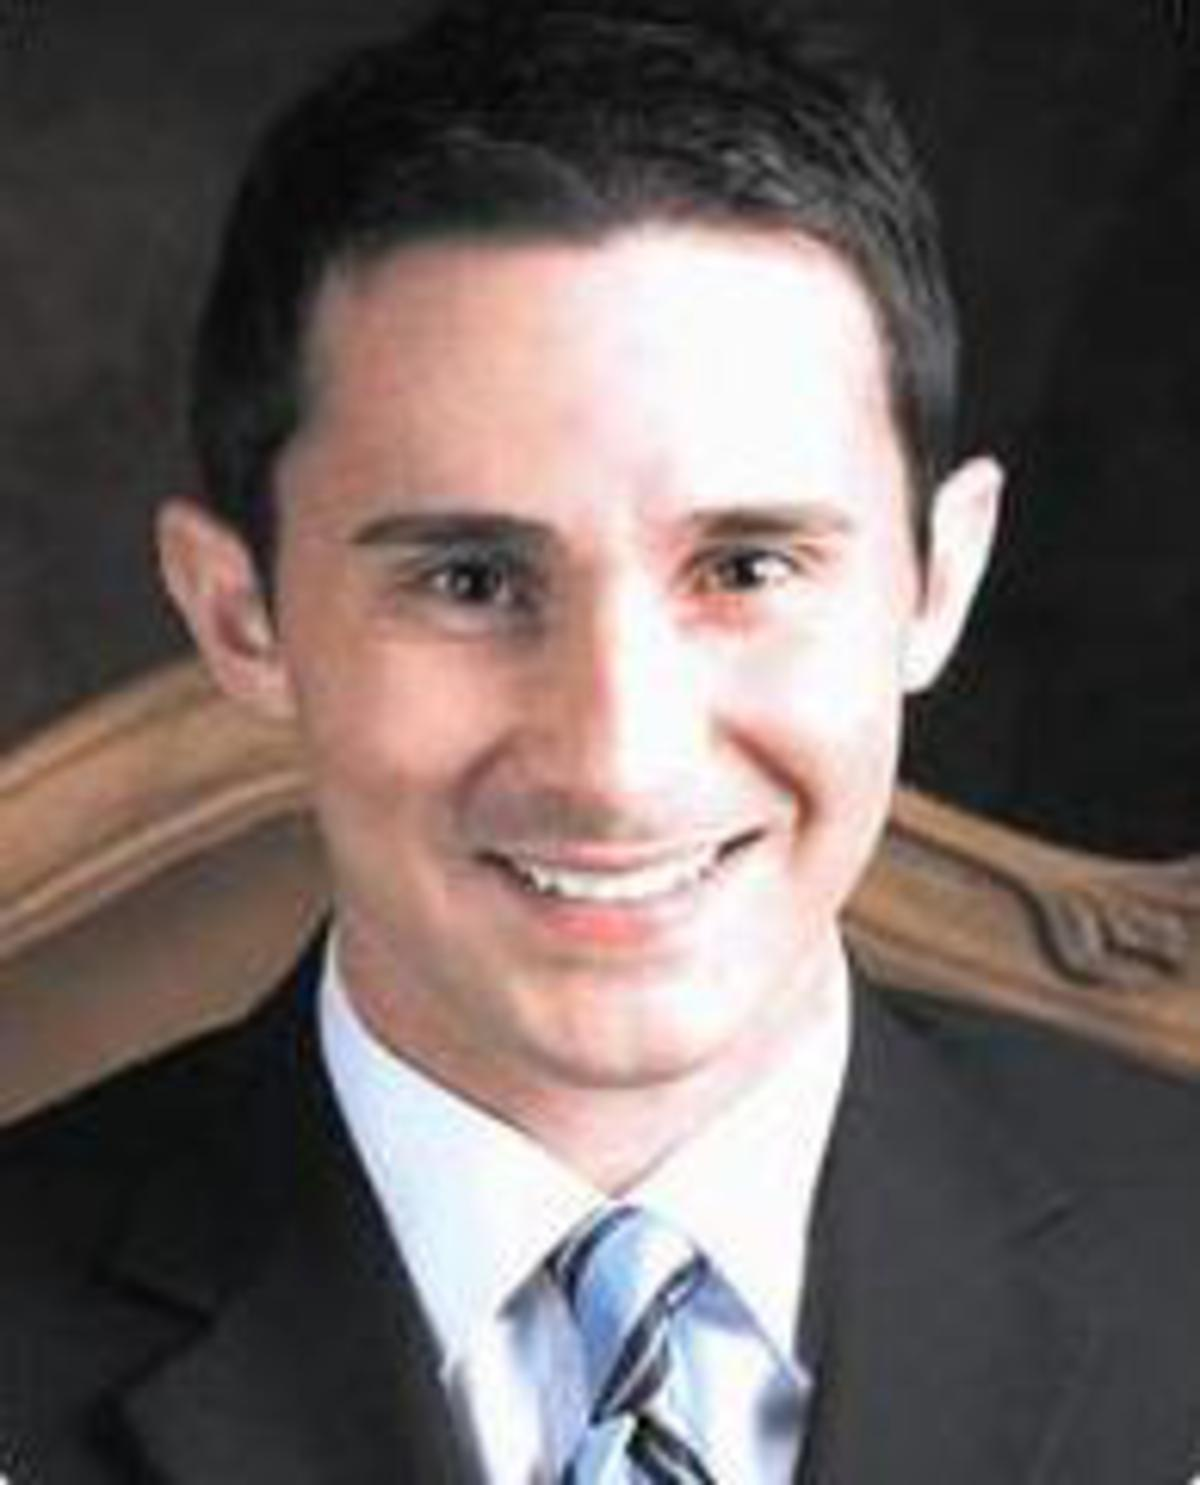 Introducing to the Practice Dr. Jeff DiBenedetto!